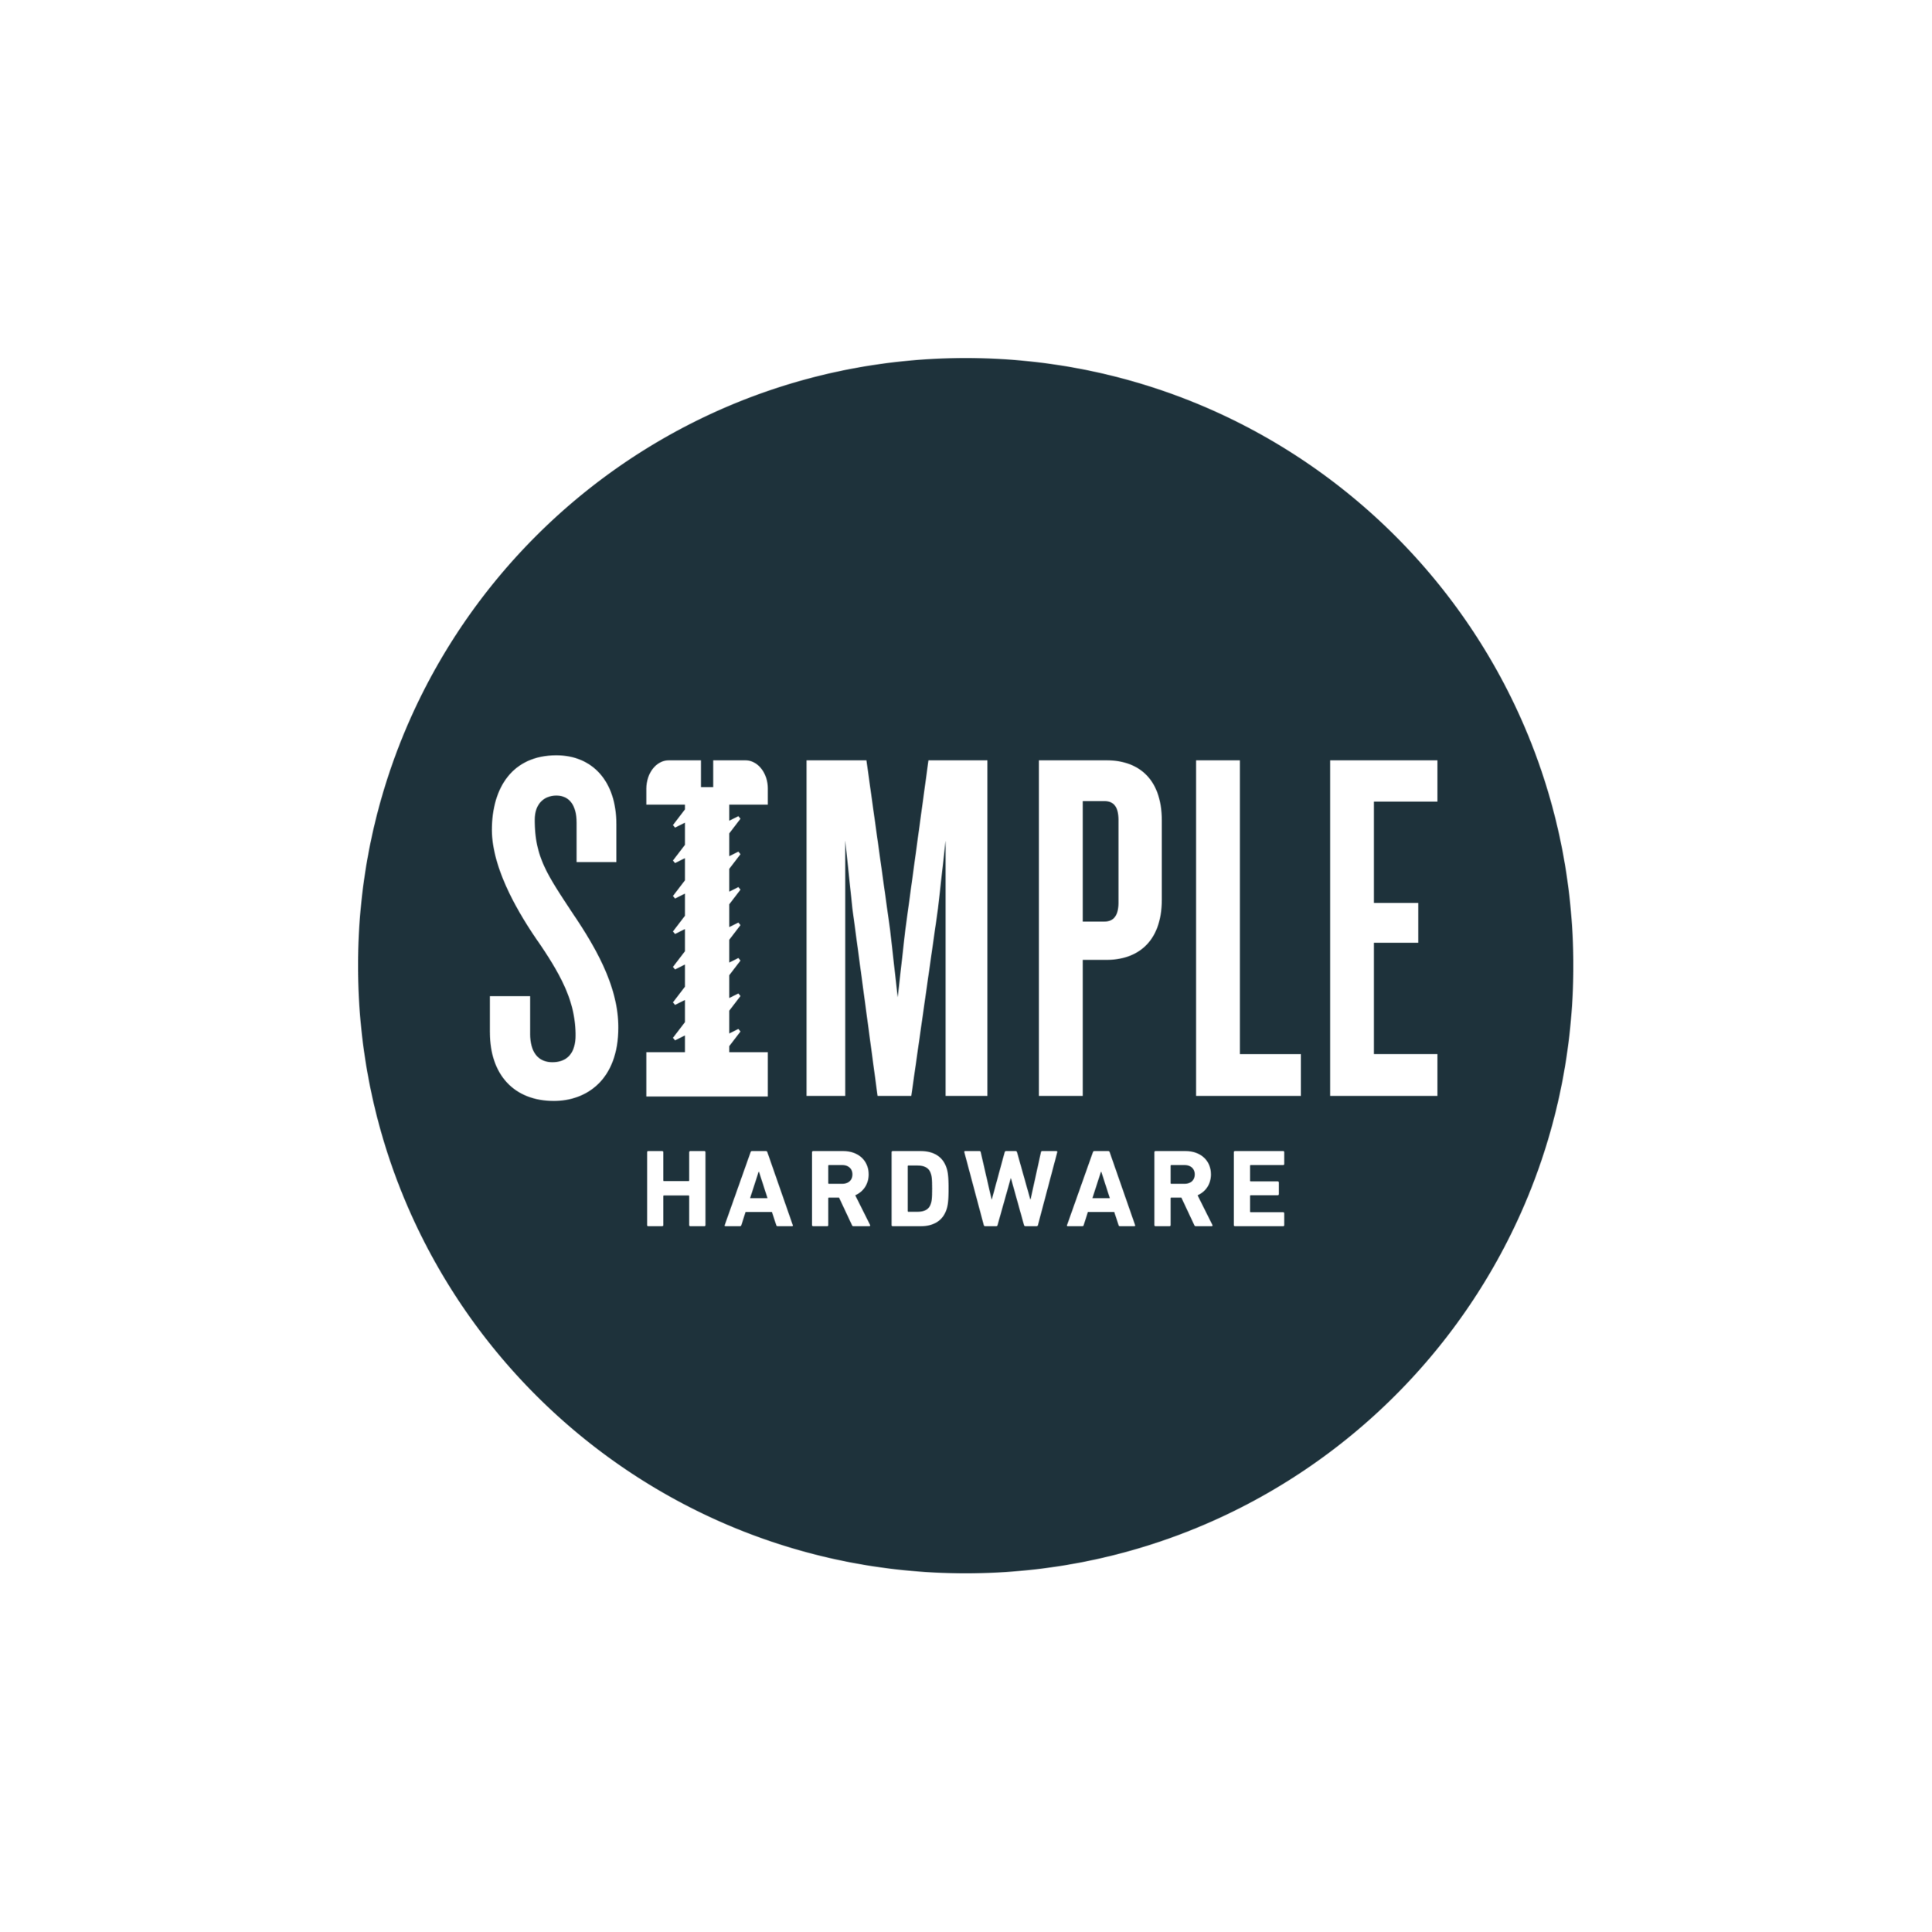 simple hardware  Simple Hardware is a retailer-owned cooperative of hardware and home improvement stores with each store being independently owned and operated by local entrepreneurs that position themselves as a service-oriented alternative to hardware chain stores.